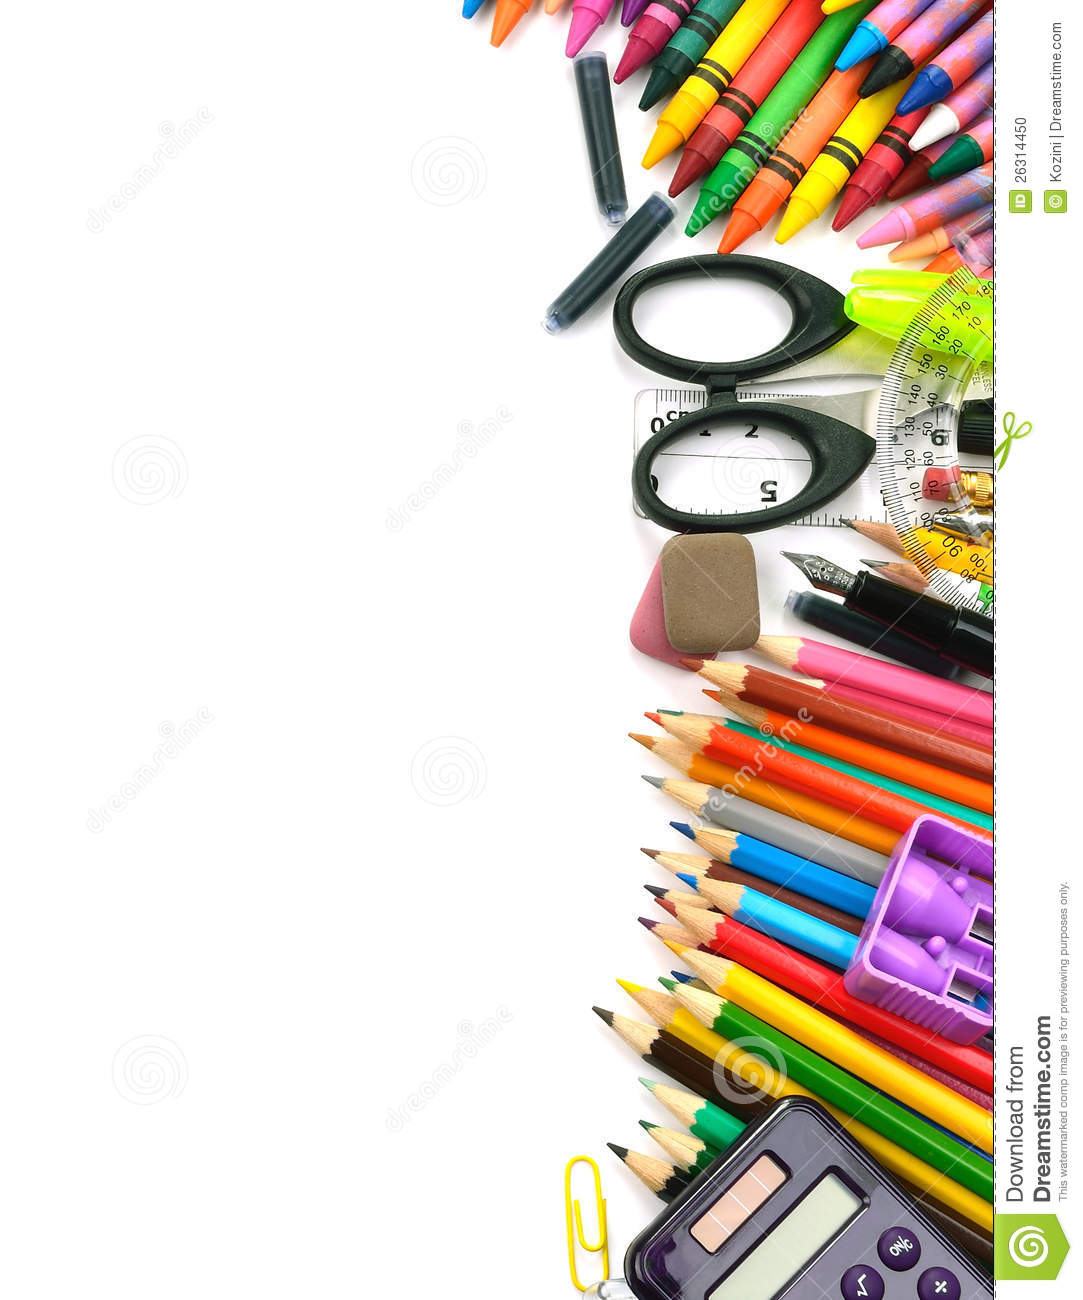 School and office supplies frame, on white background, back to school.